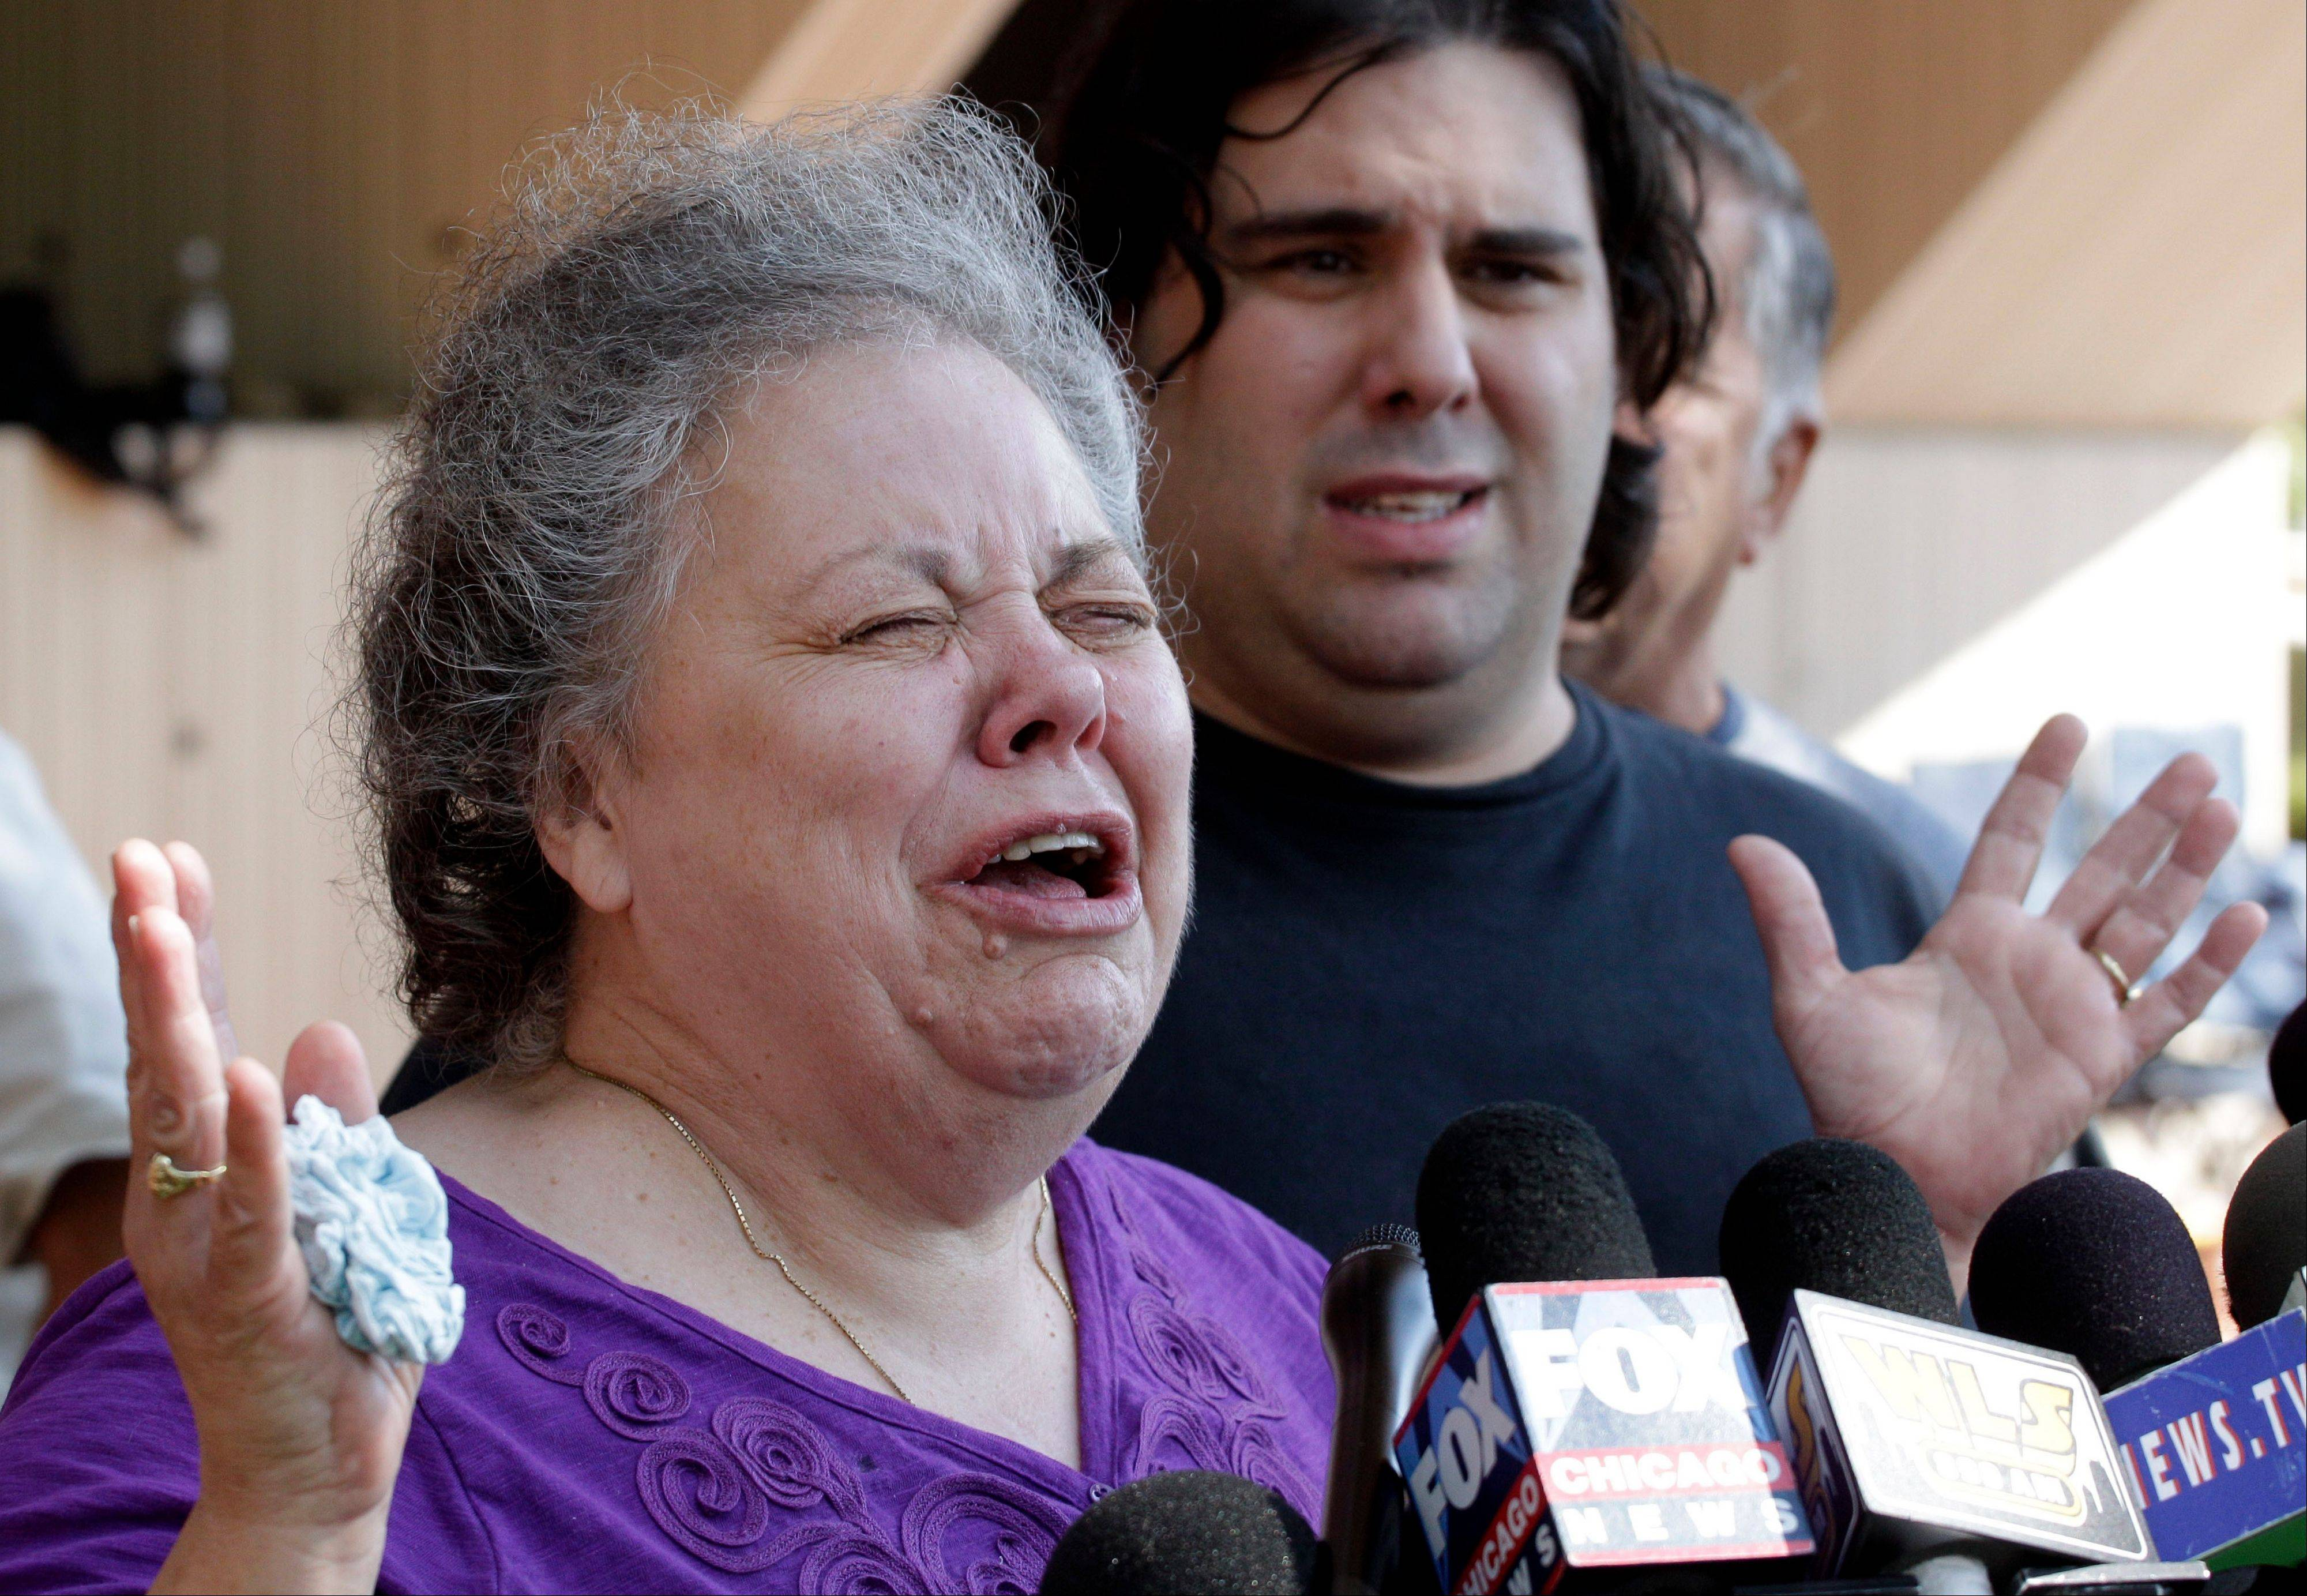 Marcia Savio, stepmother of Kathleen Savio, cries Thursday outside the Will County Courthouse after word that former Bolingbrook police officer Drew Peterson was found guilty of Kathleen Savio's murder. Marcia Savio is accompanied by Kathleen Savio's half-brother, Nicholas Savio.